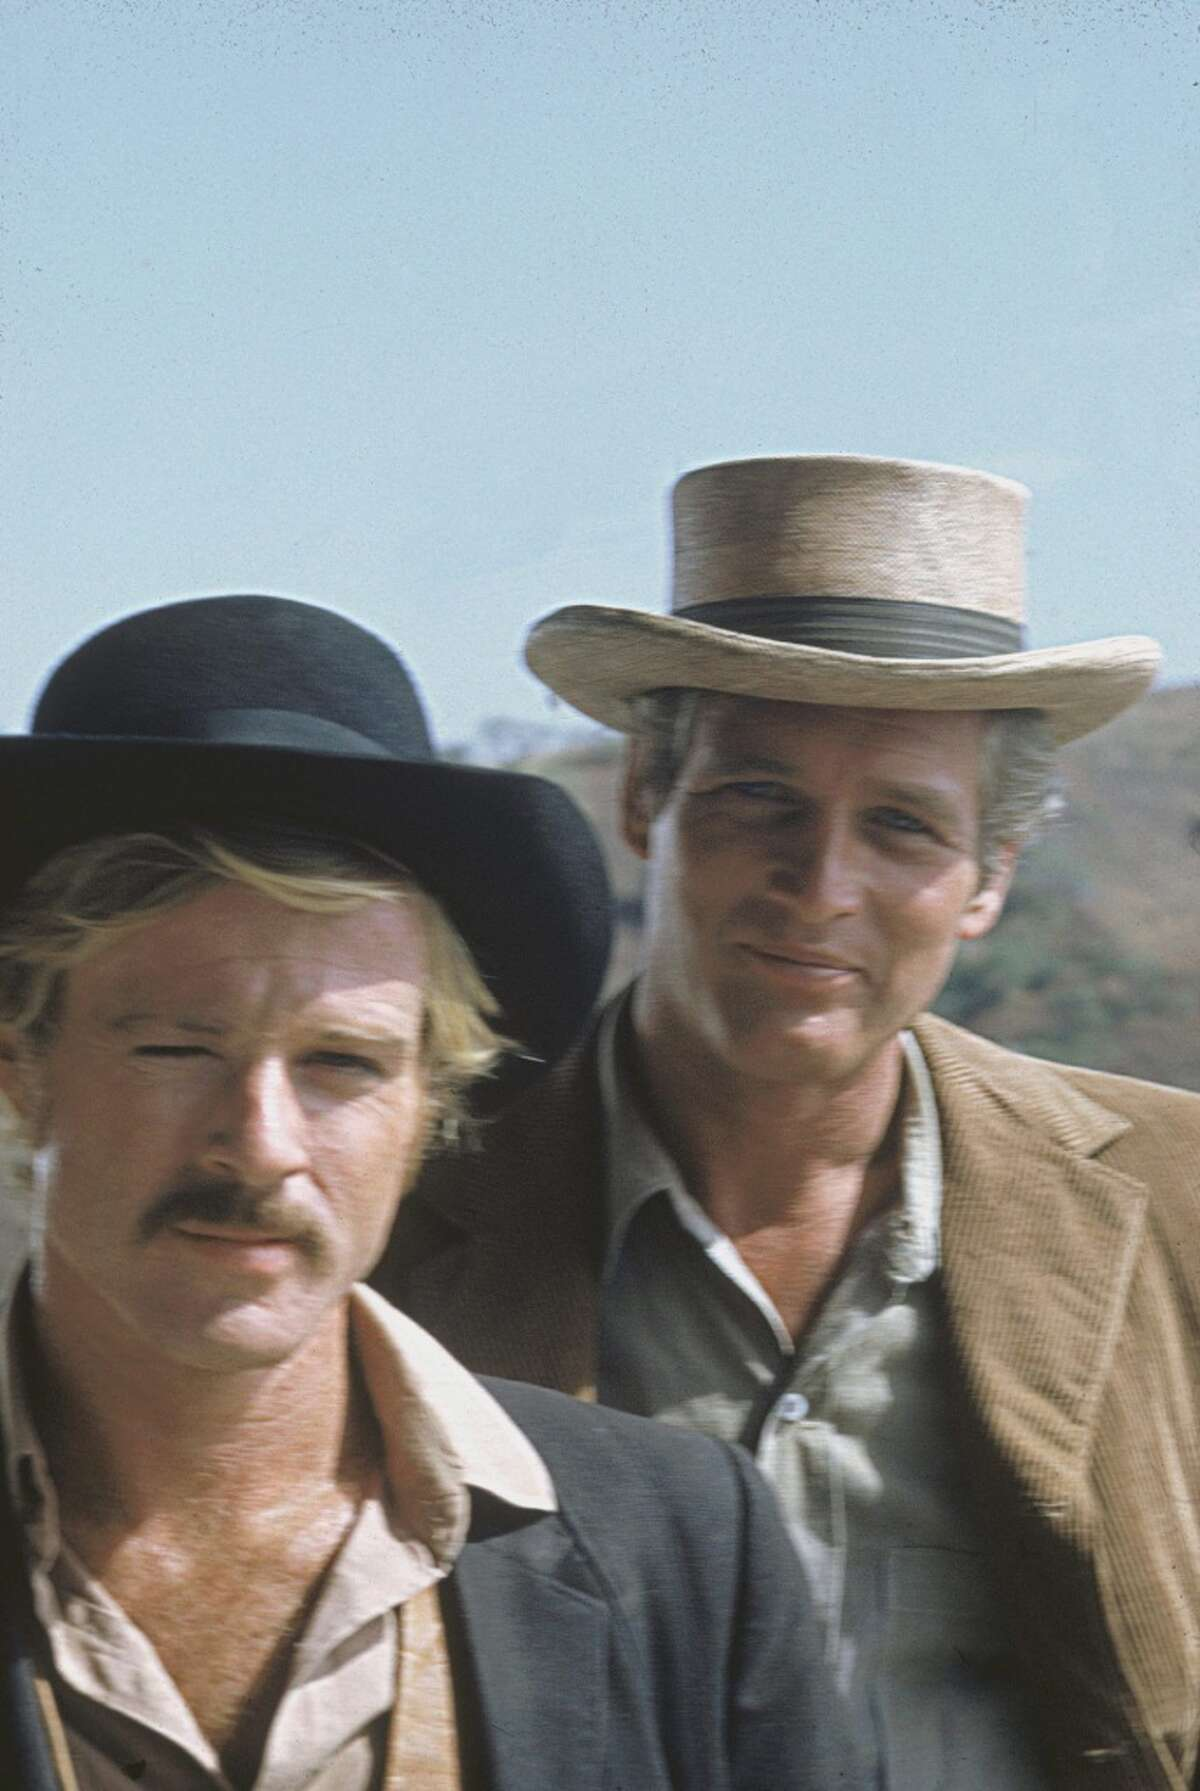 """Sundance Kid Redford was a successful actor and star before 1969's """"Butch Cassidy and the Sundance Kid"""" with Paul Newman, but this one put him in the pantheon."""